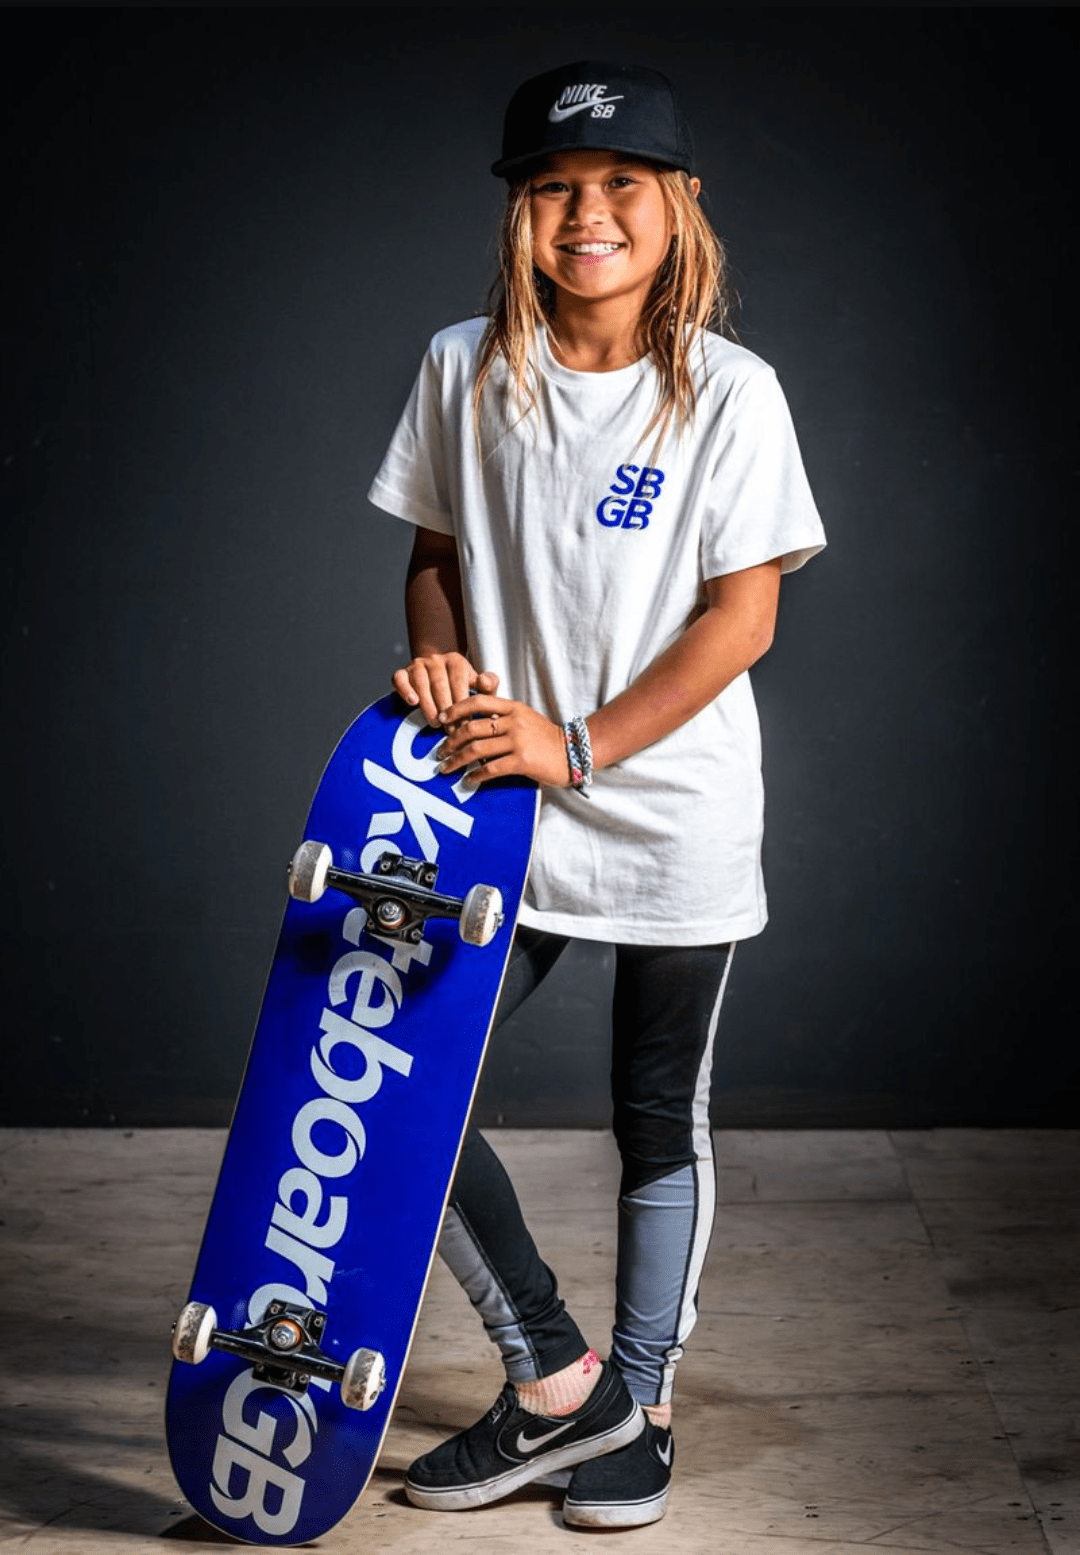 Sky Brown With Her Skateboard